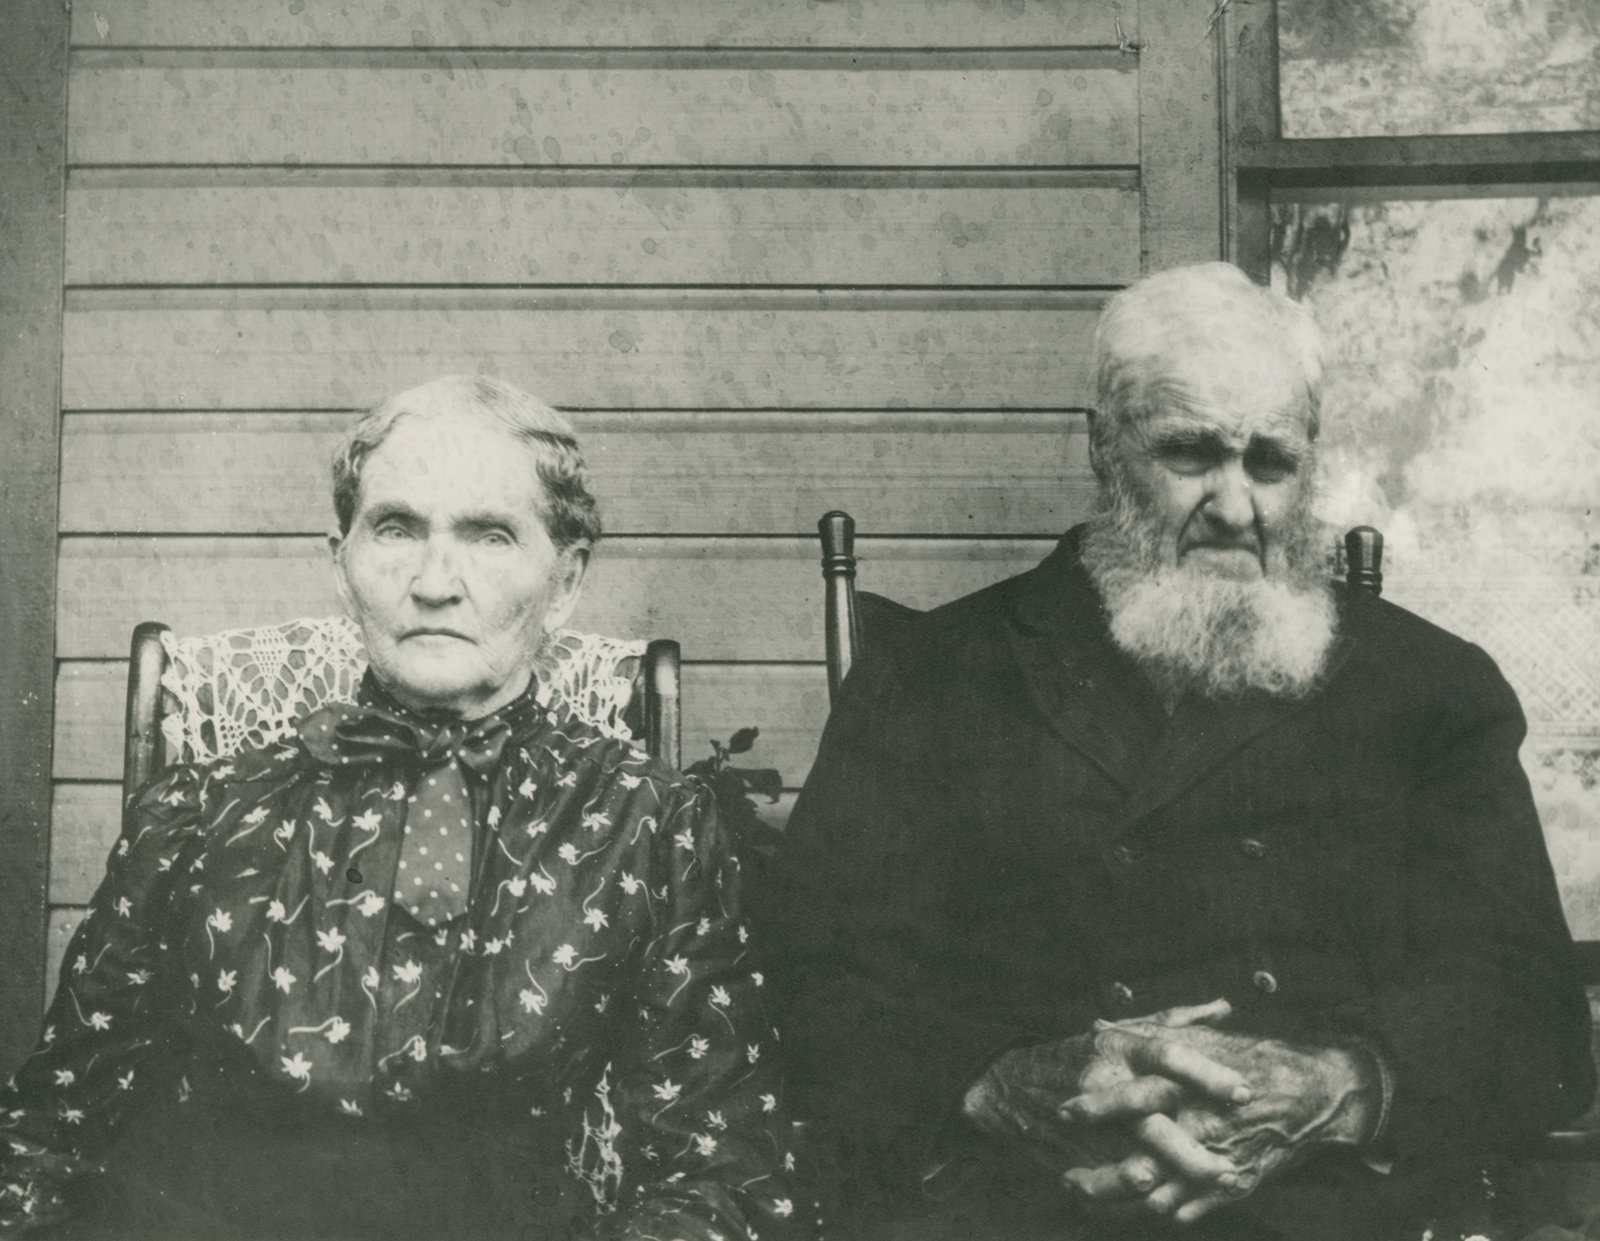 William Topping and Elizabeth Johnston Topping